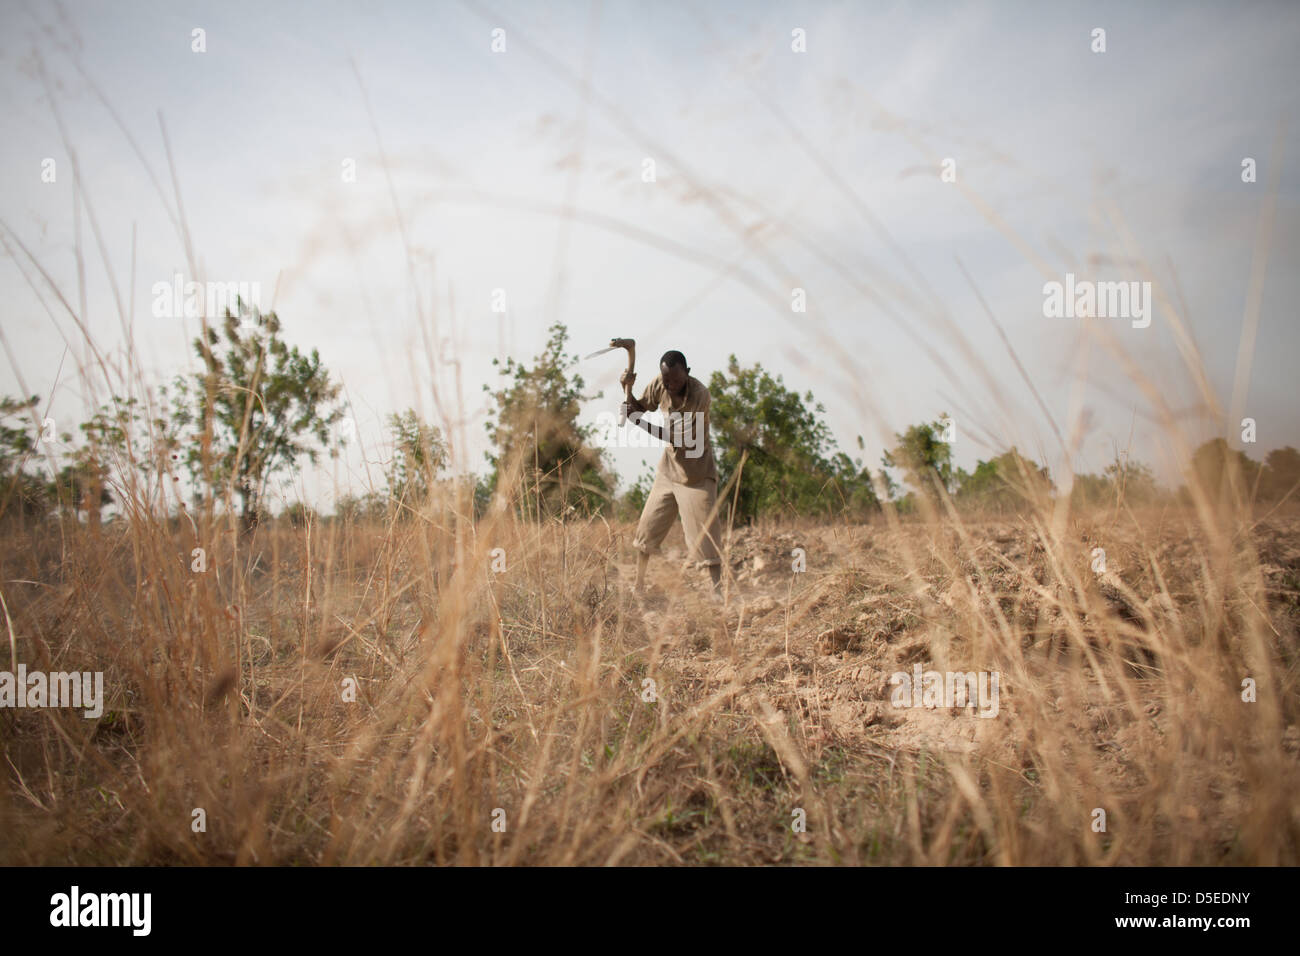 A man harvests Yams on his farm in Nandom, Ghana. - Stock Image